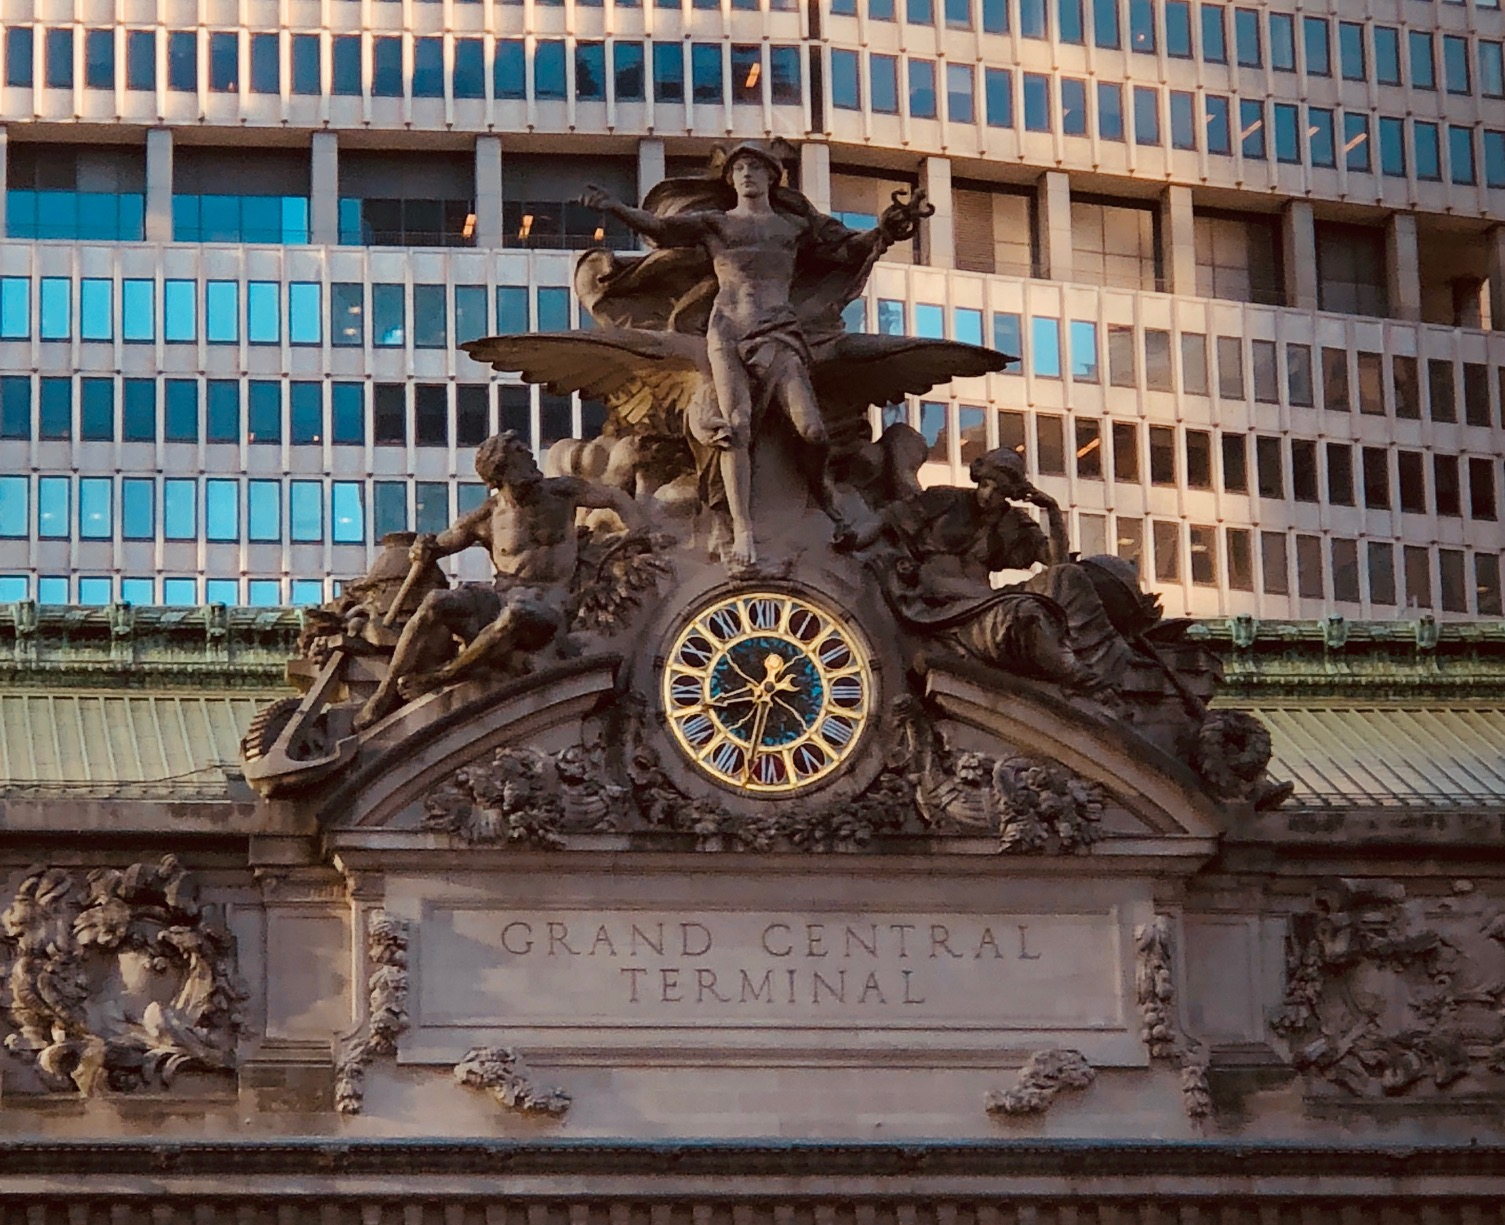 The architecture of Grand Central Terminal is truly unforgettable.